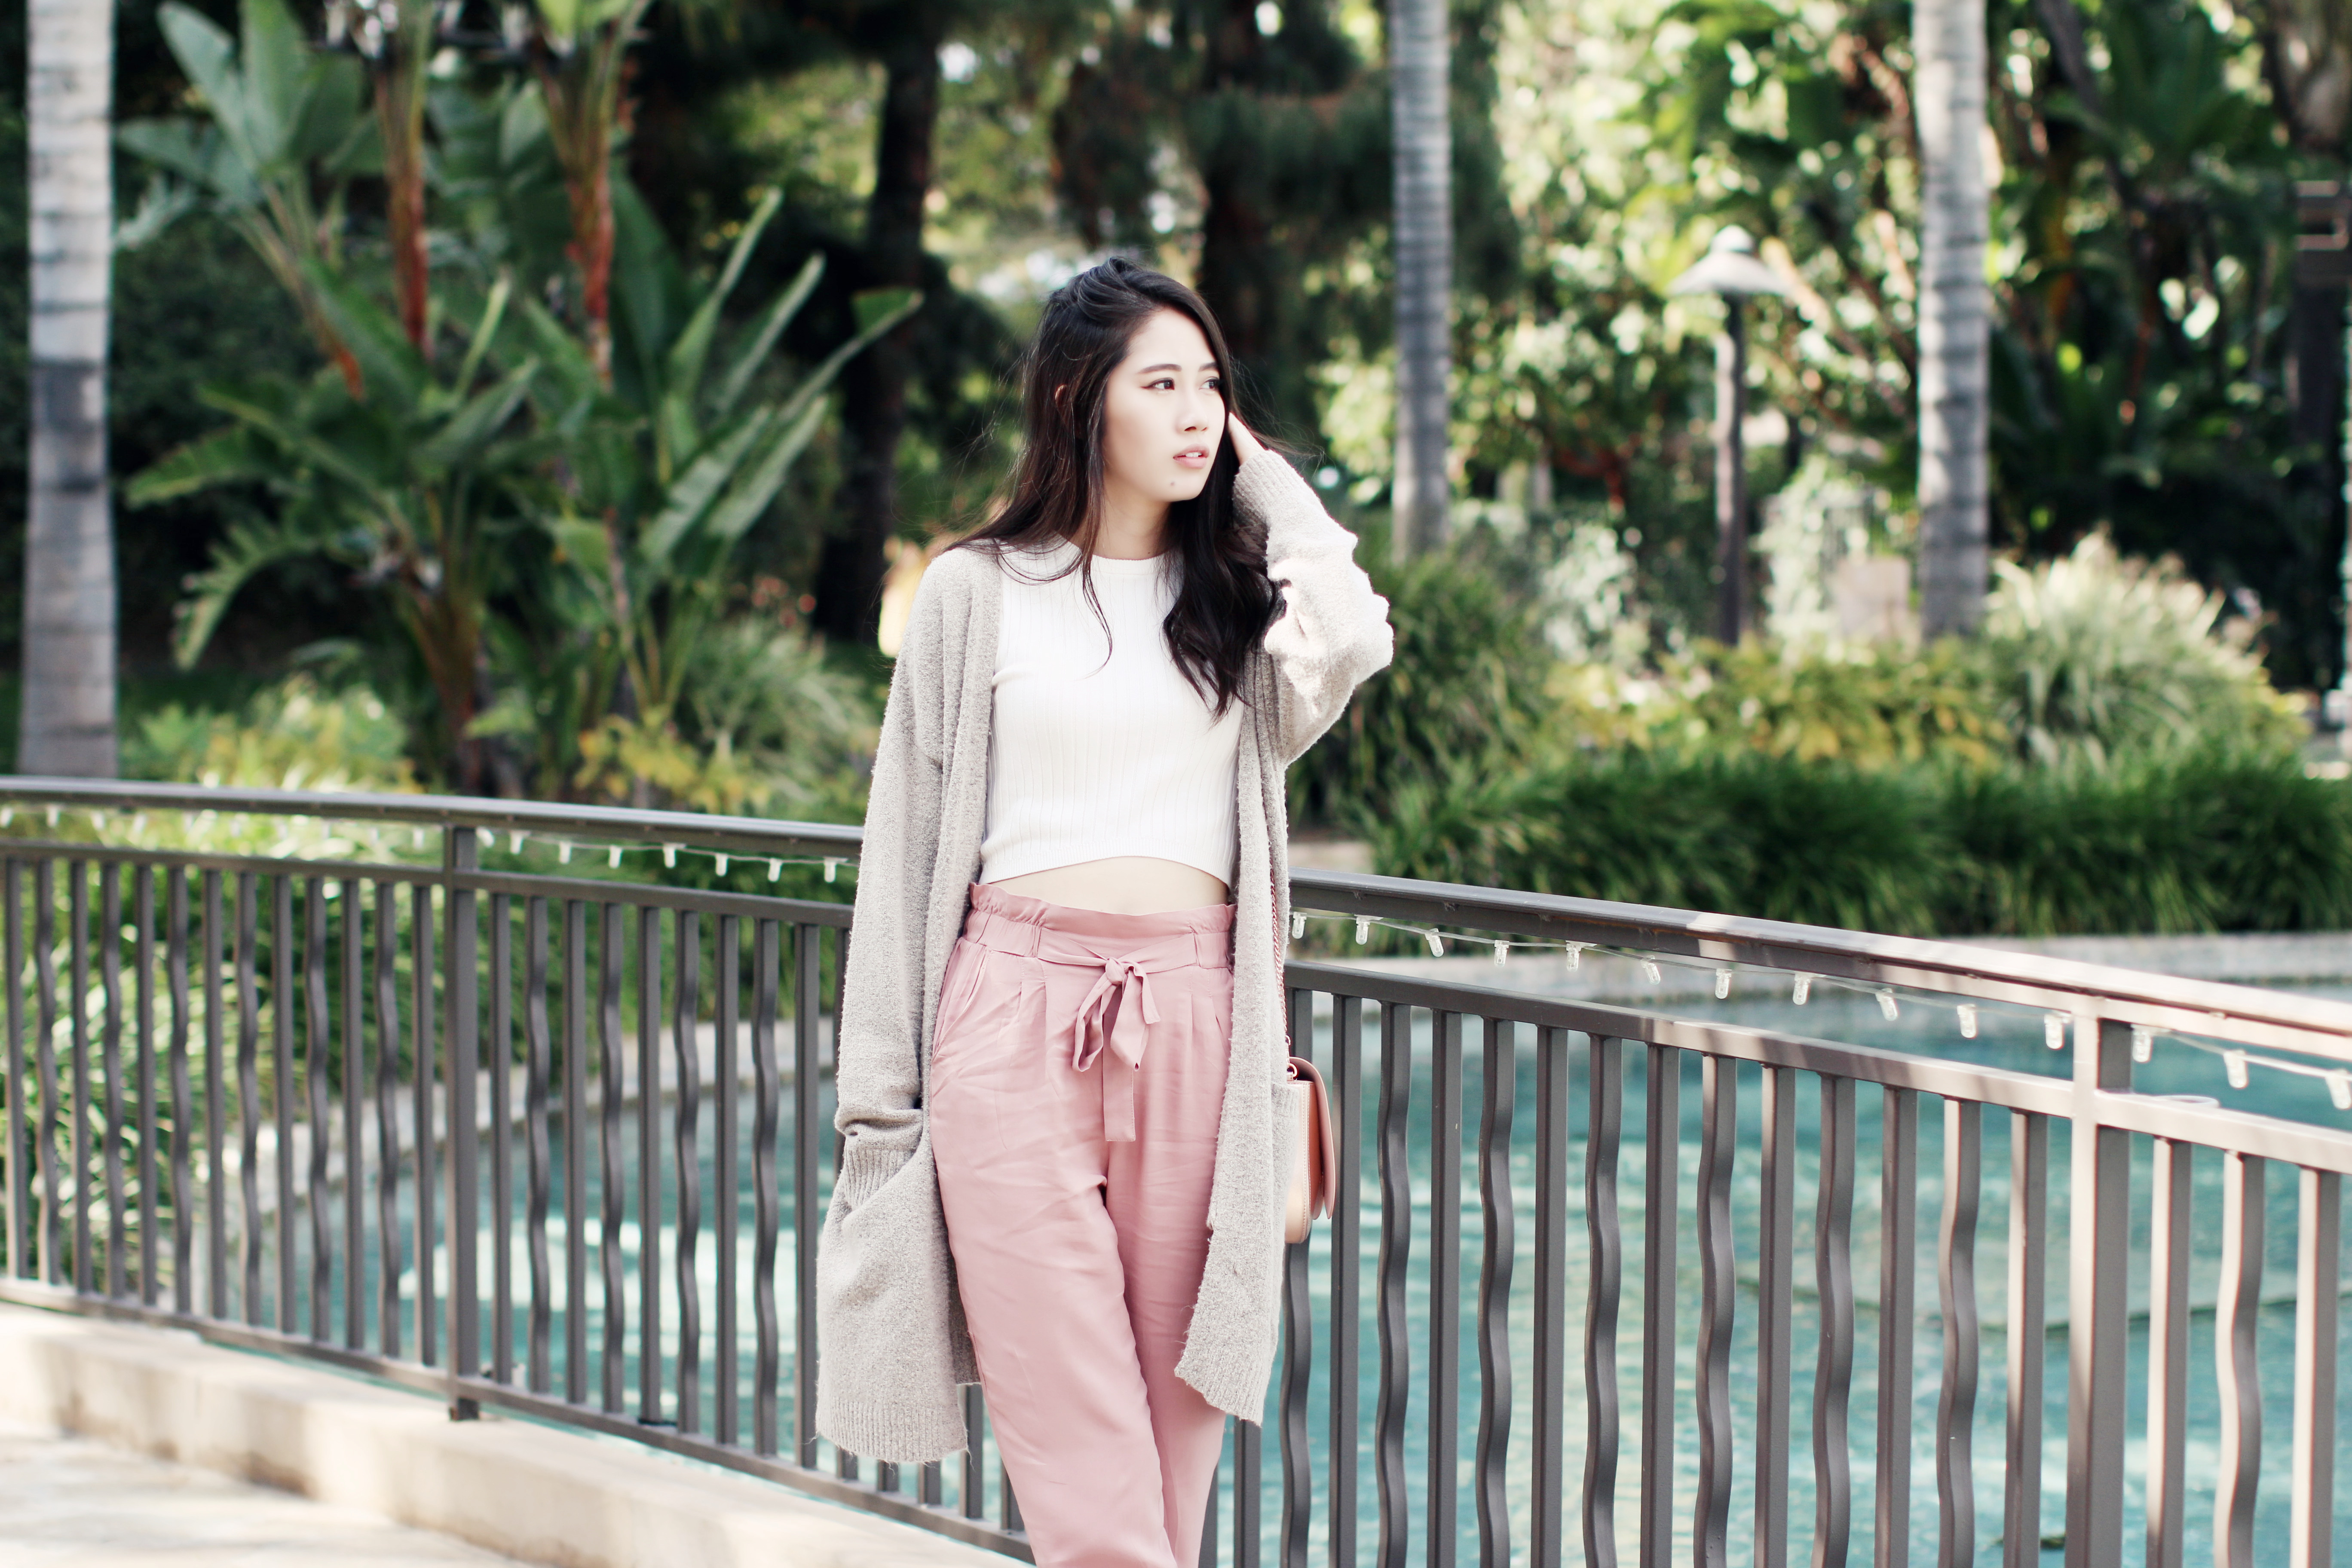 4534-ootd-fashion-style-outfitoftheday-wiwt-streetstyle-forever21-f21xme-anyahindmarch-ninewest-trousers-elizabeeetht-clothestoyouuu